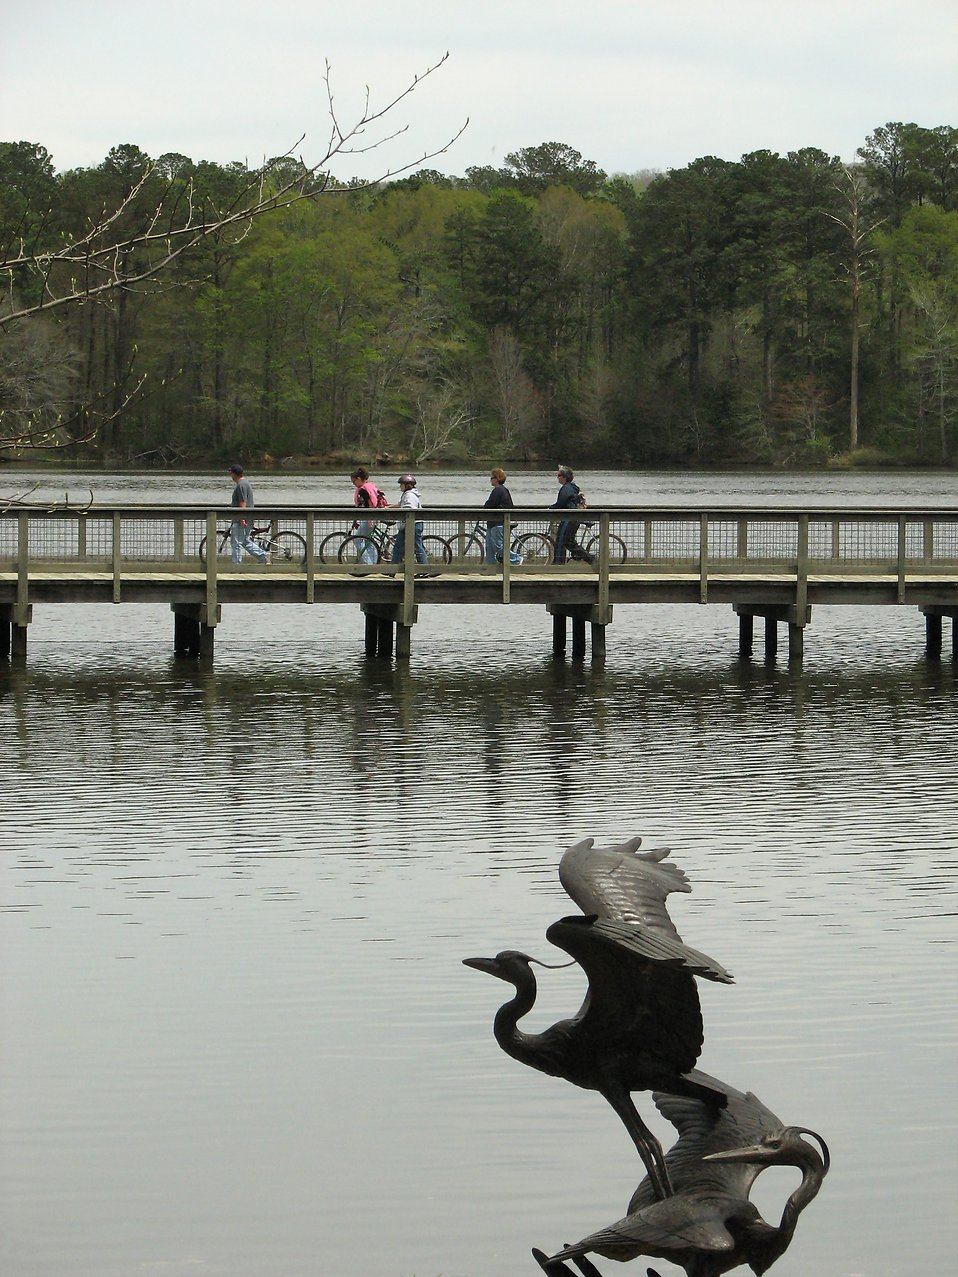 People riding bikes across a bridge with a bird statue in the foreground : Free Stock Photo